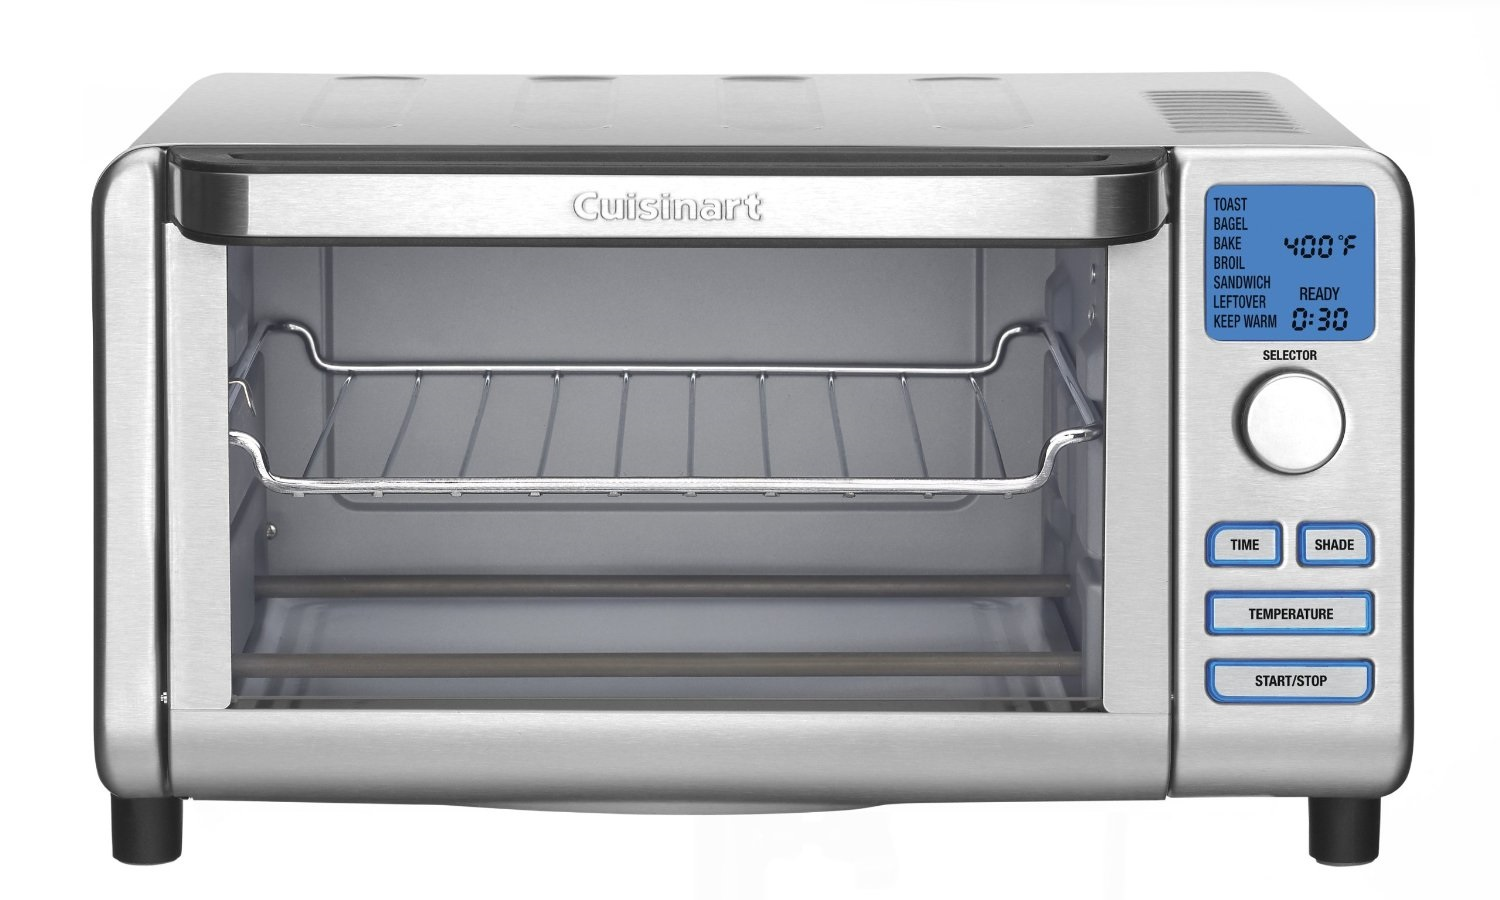 convection review worth buy oven costly but cuisinart tob toaster broiler a